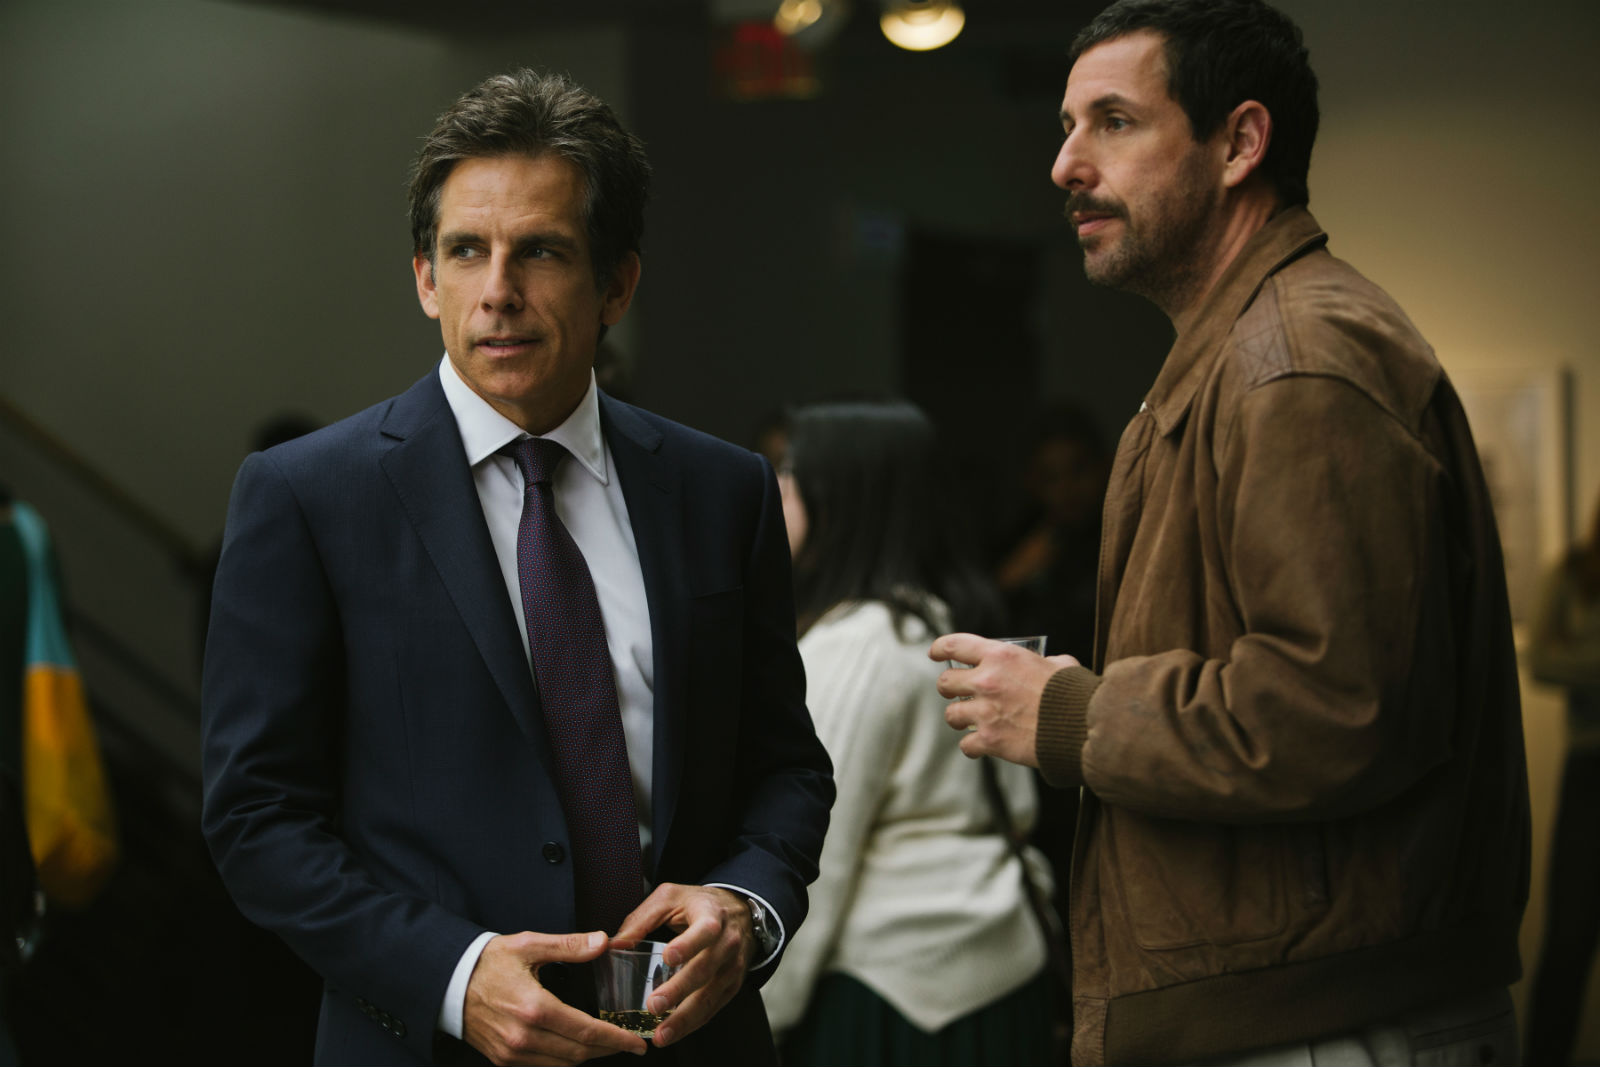 Ben Stiller and Adam Sandler, together again for the first time in The Meyerowitz Stories